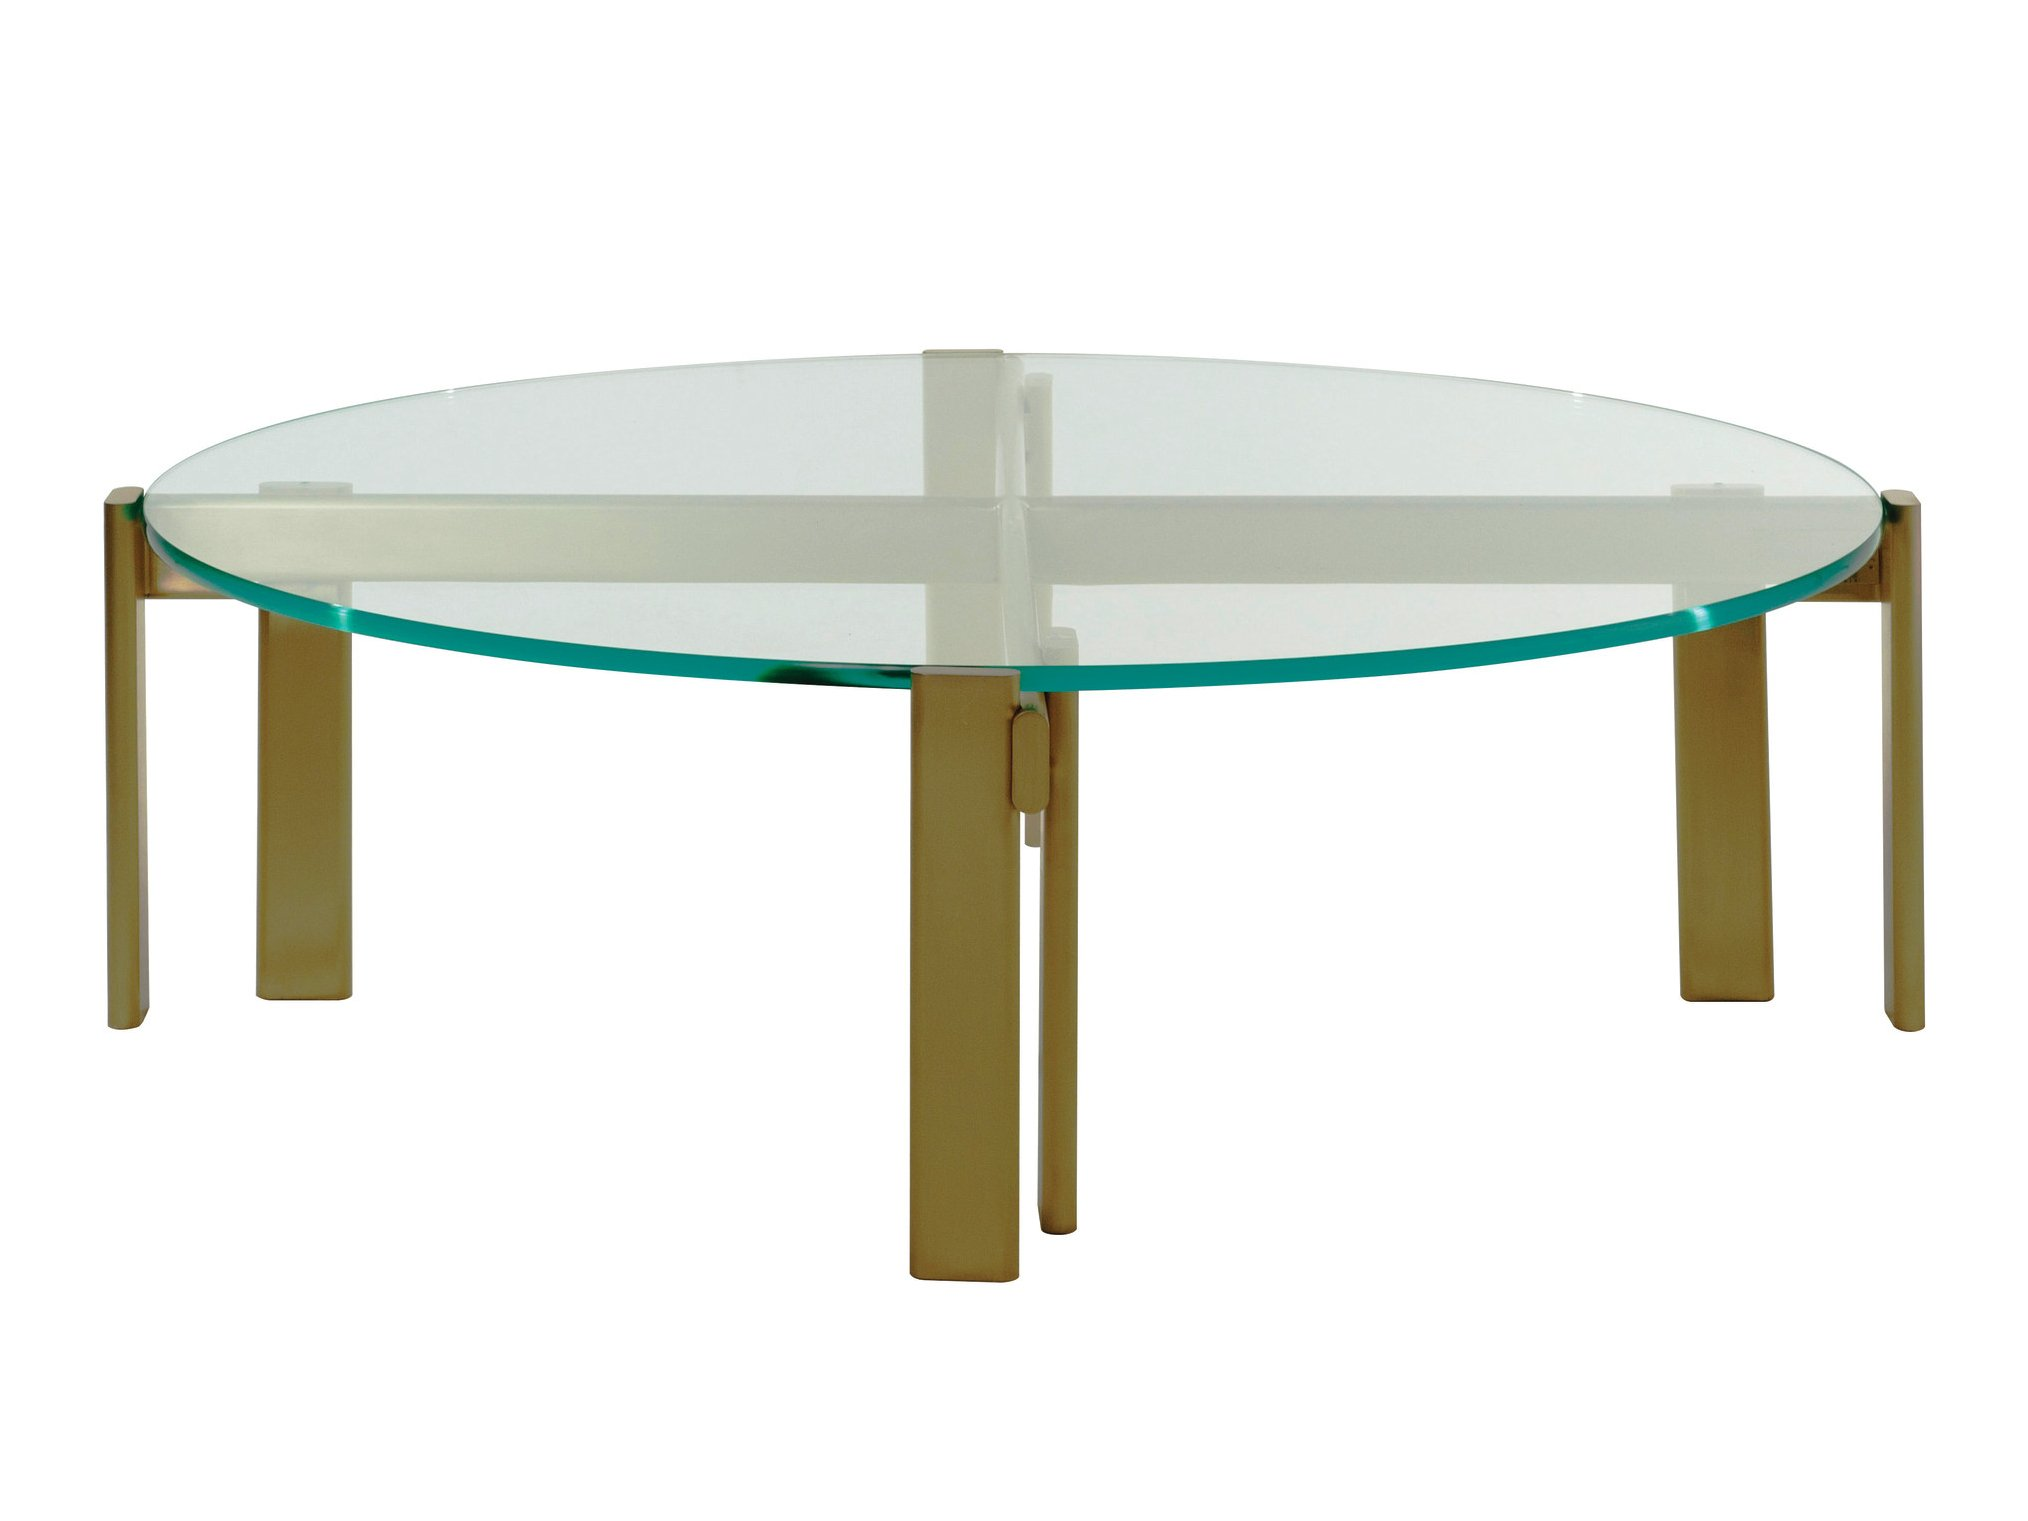 paris-paname-coffee-table-roche-bobois-307923-rel7c903c7f Unique De Table Basse Plexiglas